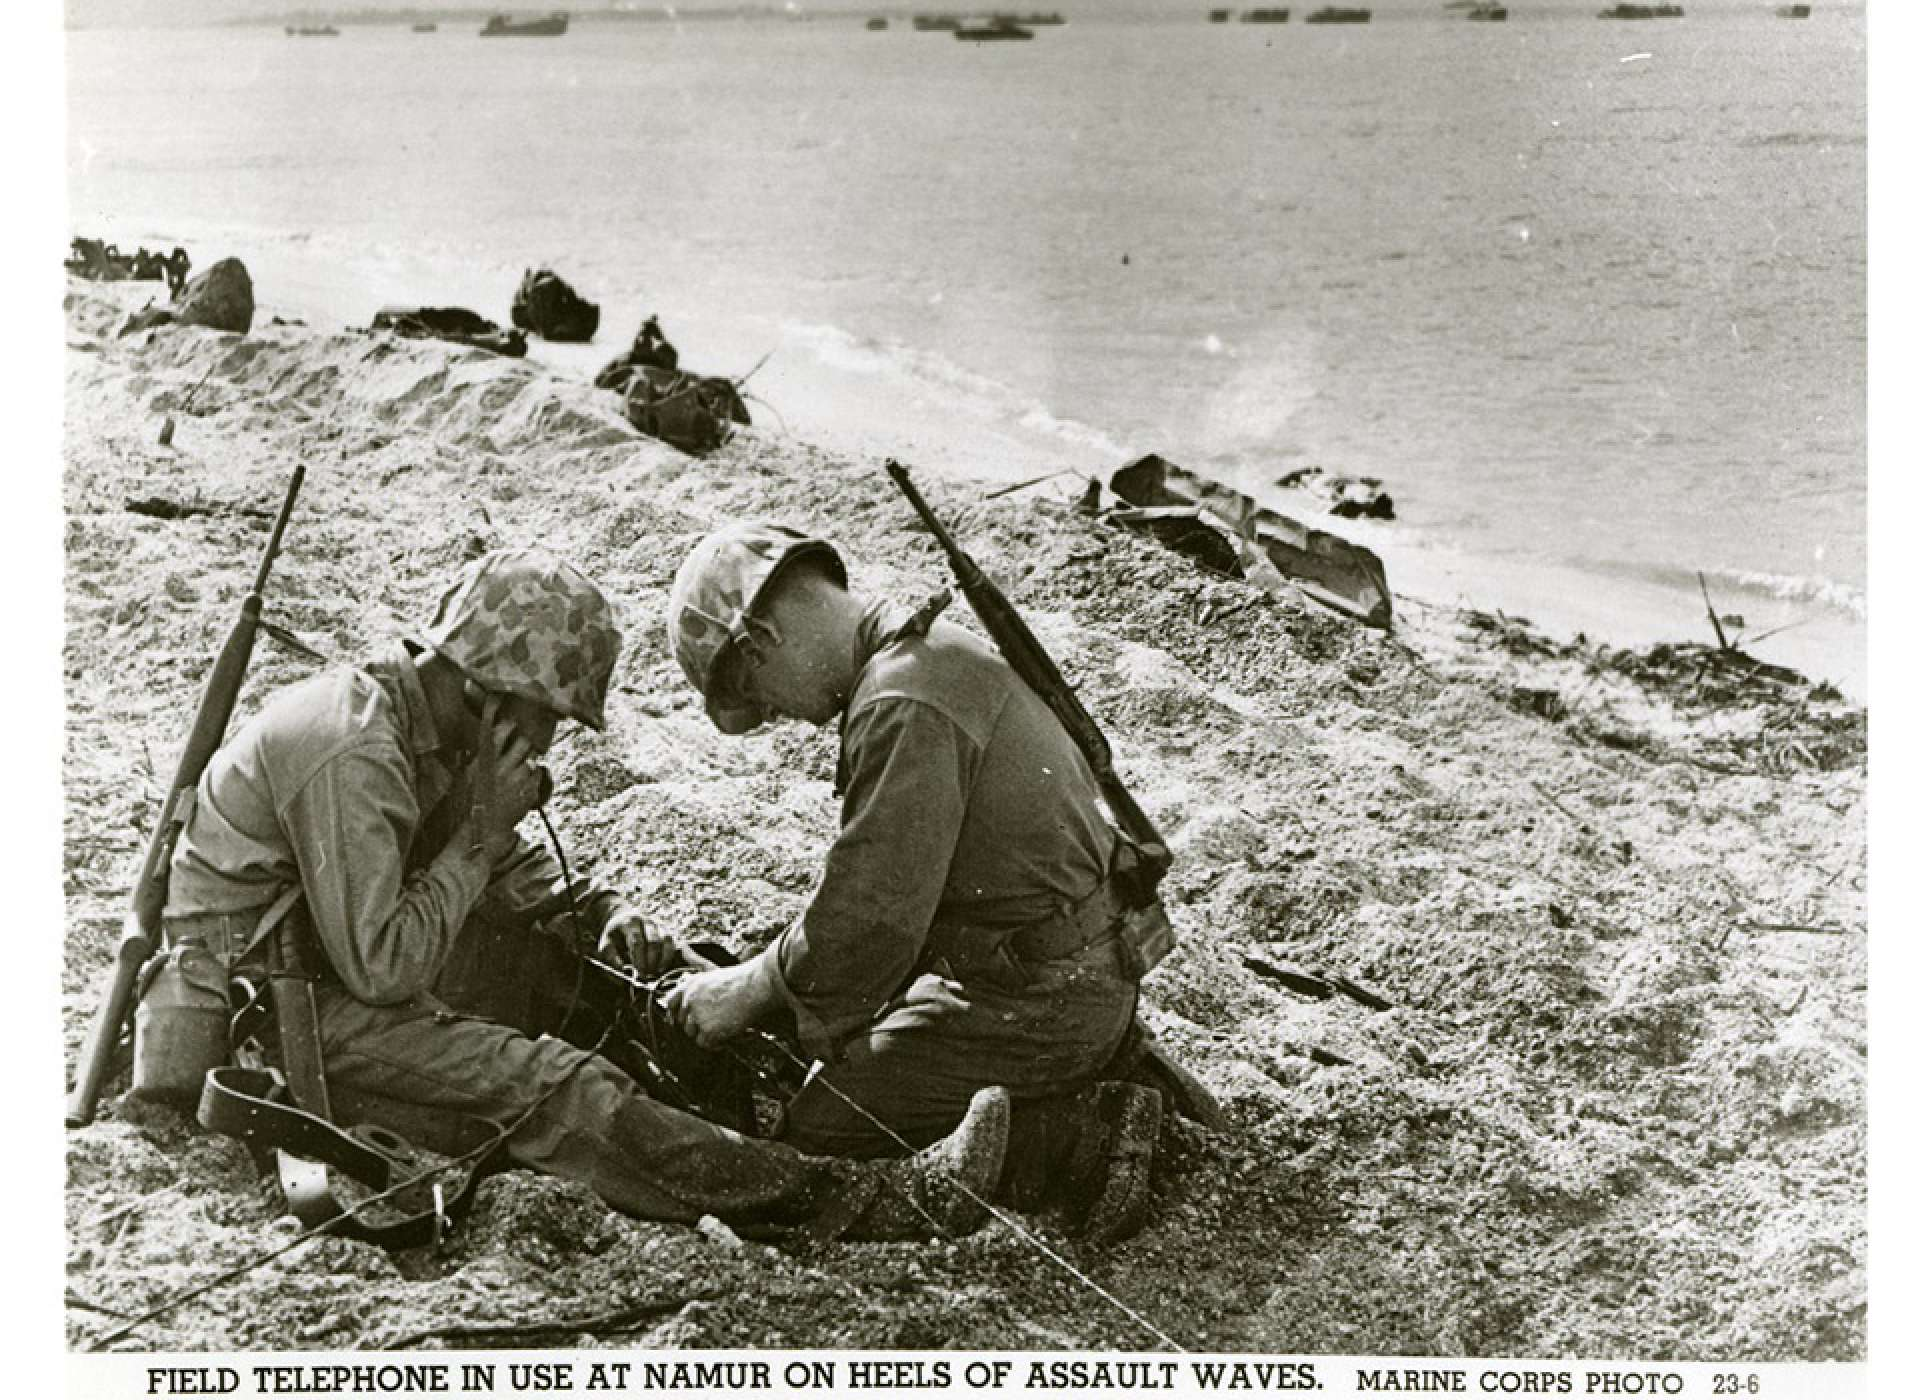 "Two United States Marines using a field telephone on a beach; debris is scattered throughout; landing craft are in the ocean in the background. Official caption on front: ""Field telephone in use at Namur on heels of assault waves. Marine Corps Photo 23-6."" Roi-Namur, Kwajalein Atoll, Marshall Islands. February 1944. Gift in memory of Sgt. Lyle E. Eberspecher, 2013.495.286"